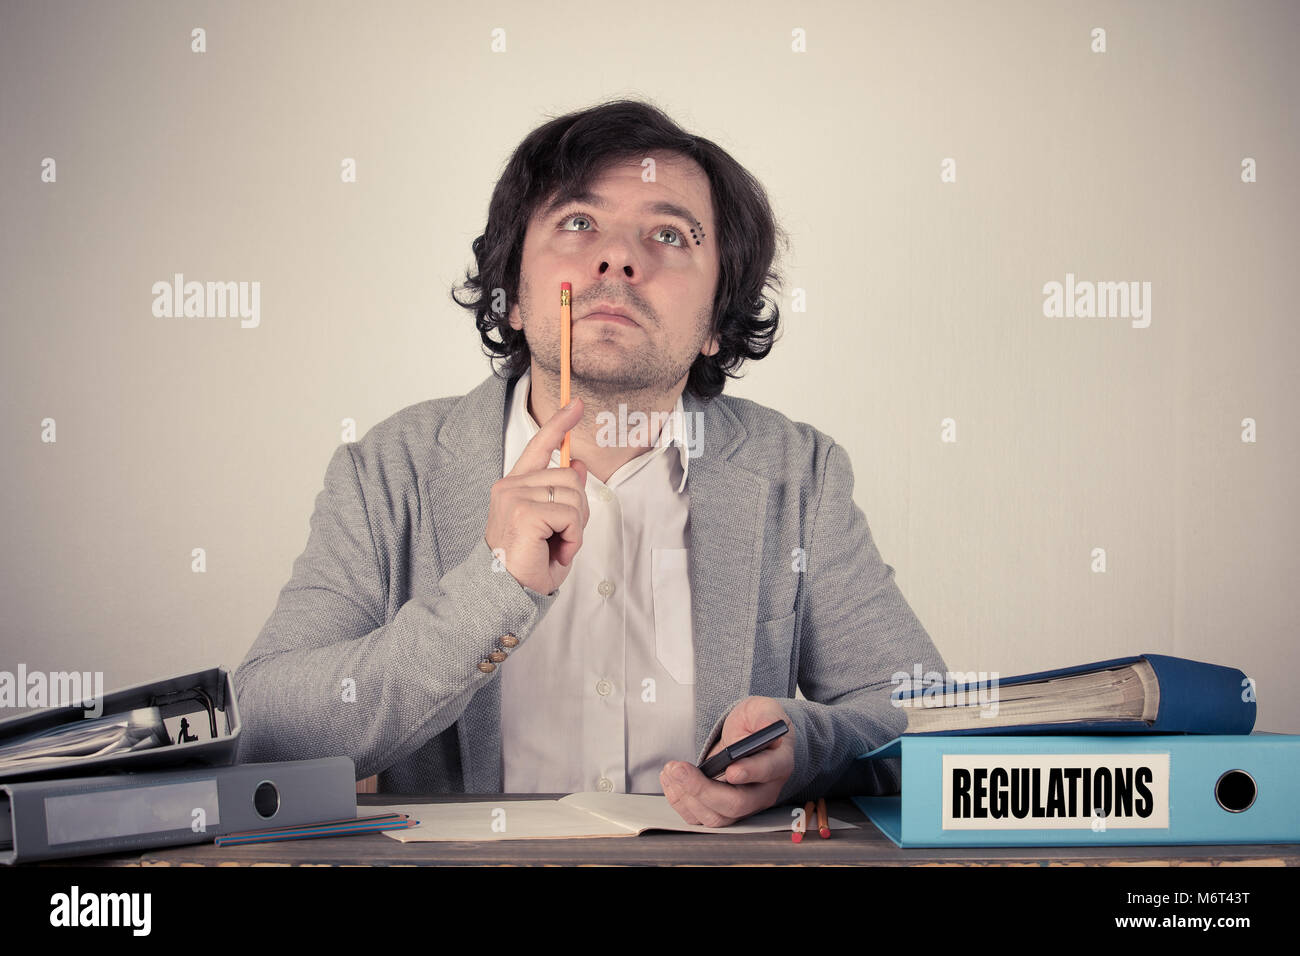 Regulations text on the binder, worried bussinesman thinking by the work desk - Stock Image